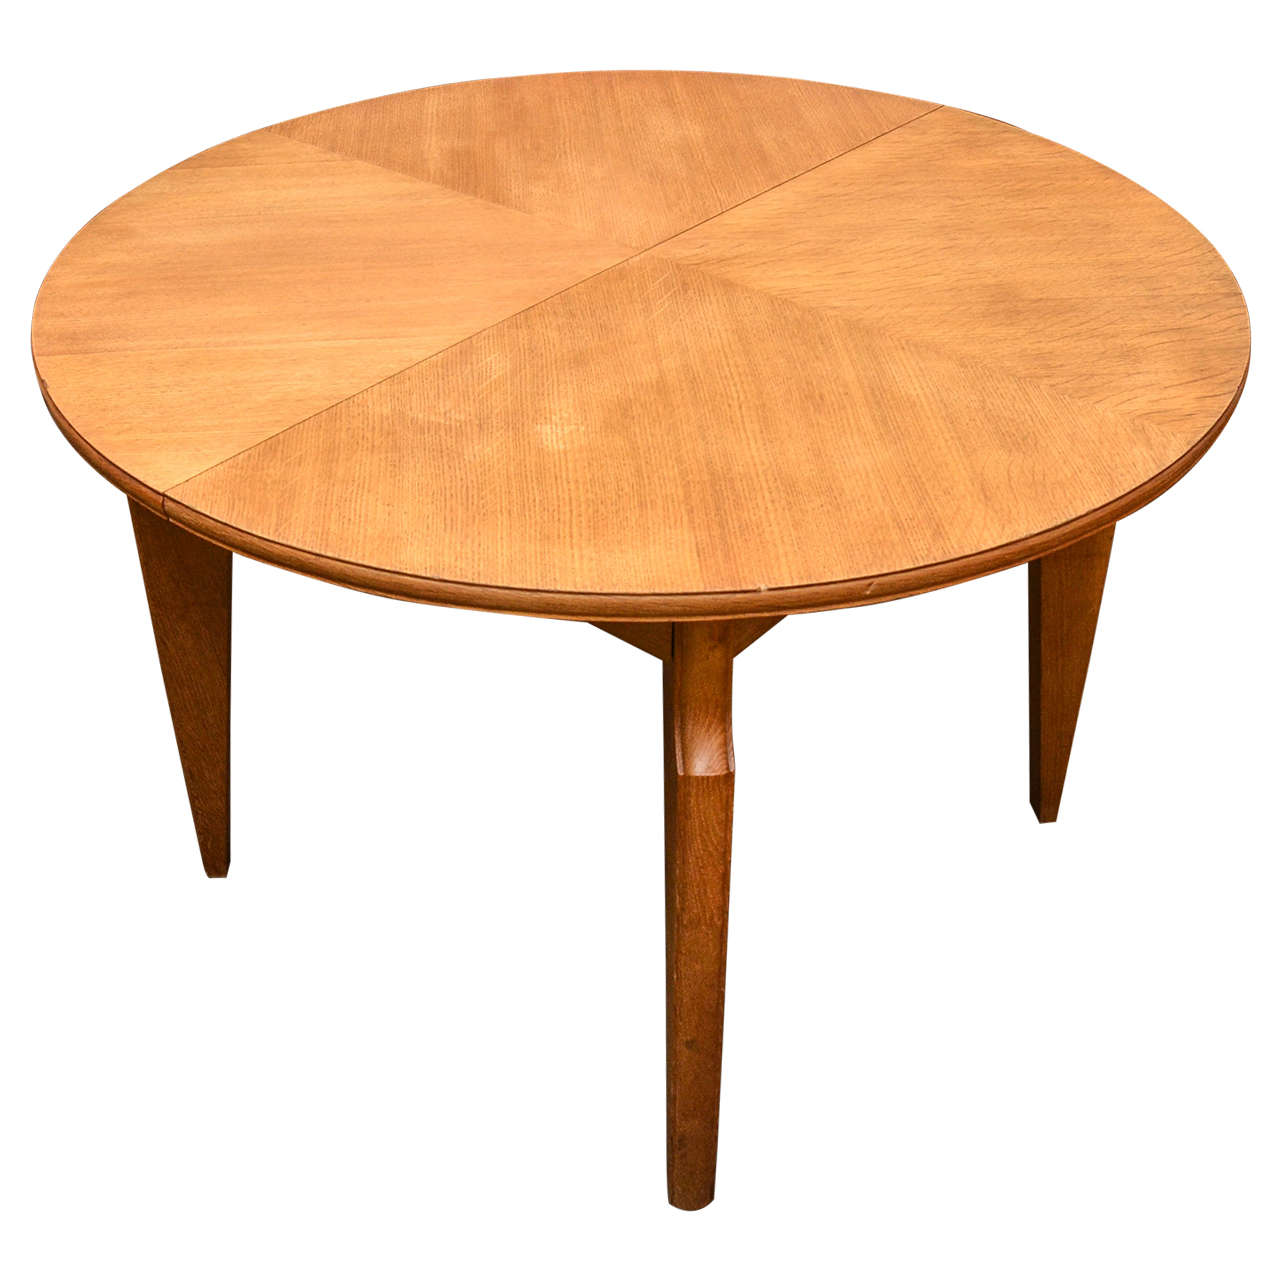 Round oak extendable dining table for sale at 1stdibs for Round extendable dining table